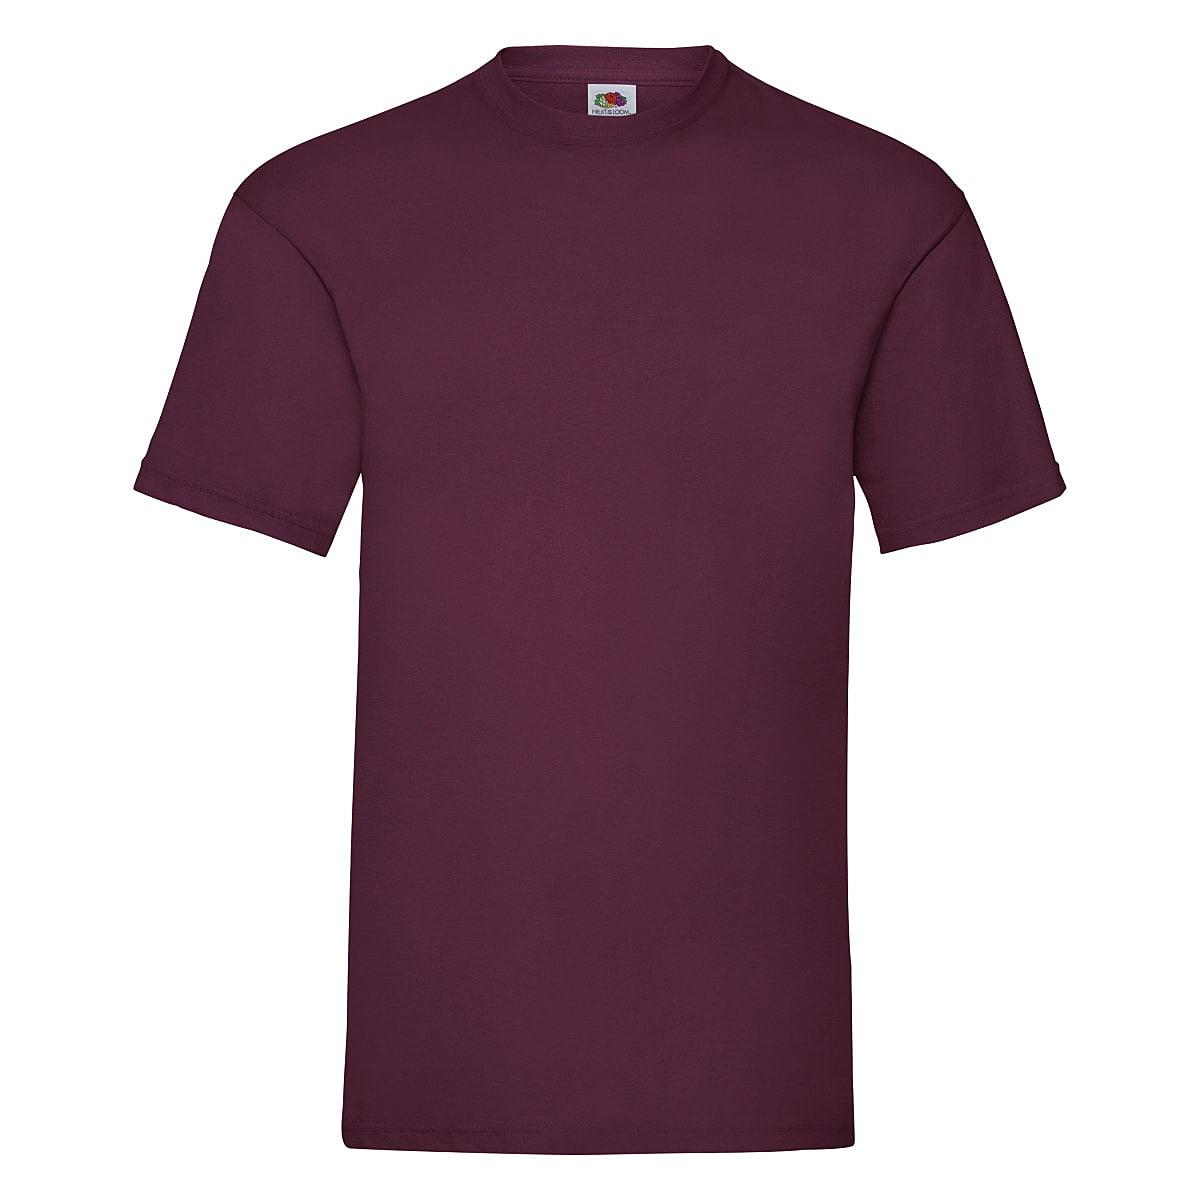 Fruit Of The Loom Valueweight T-Shirt in Burgundy (Product Code: 61036)